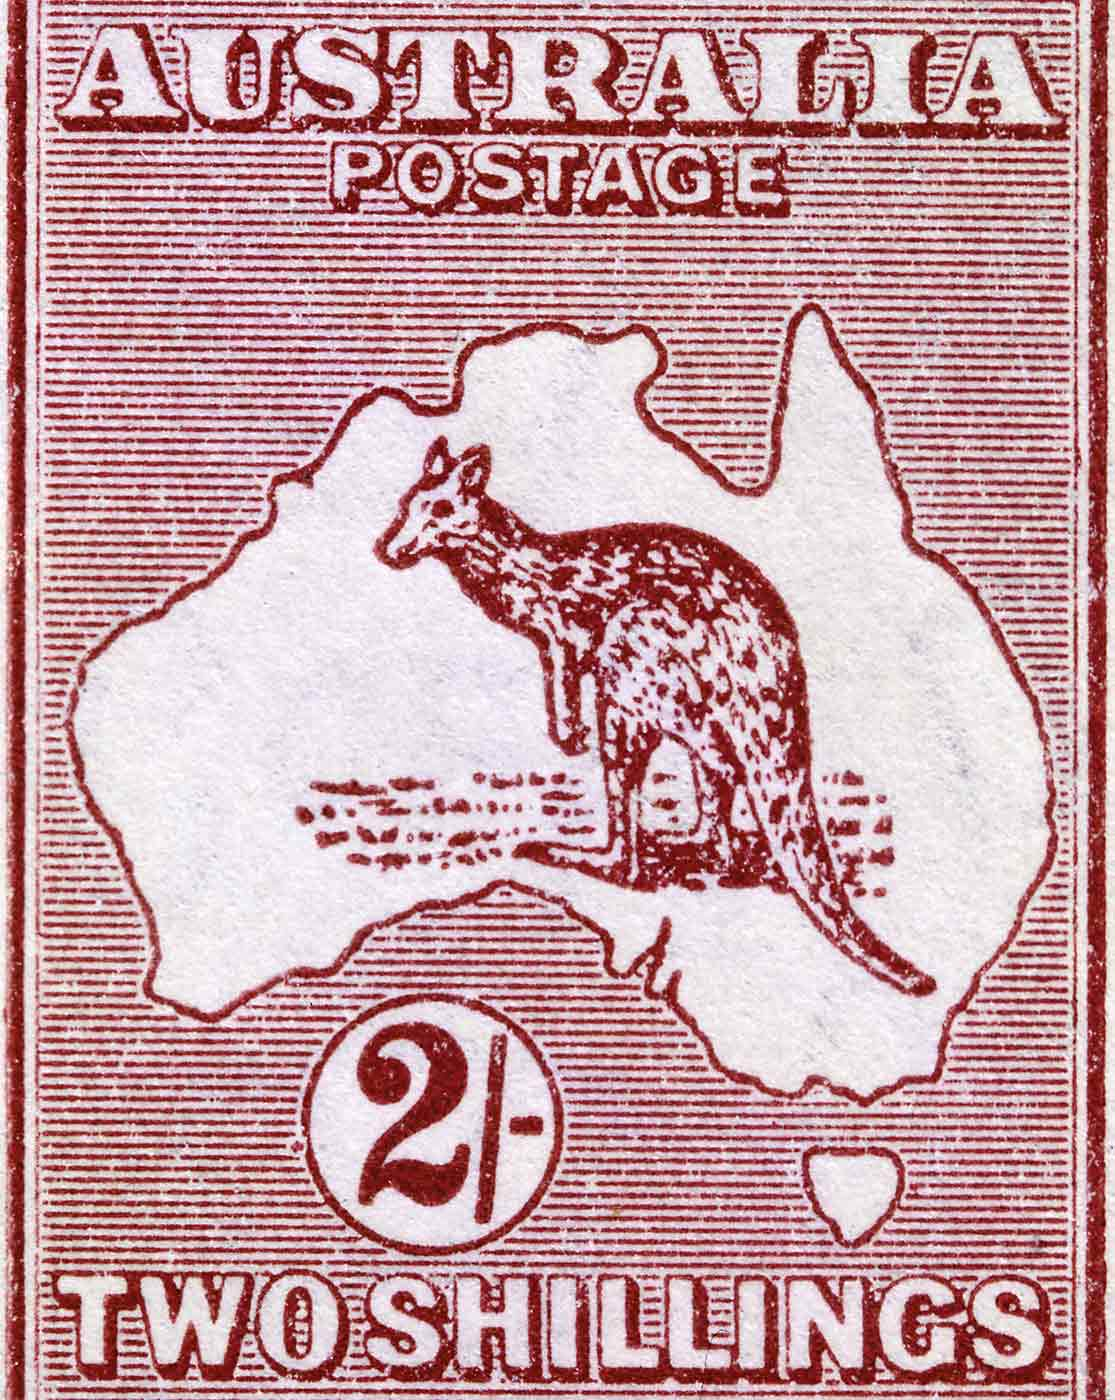 Central portion of a postage stamp with perforated sides. 'Australia Postage' is written across the top and 'Two Shillings' across the bottom. The stamp is rust and white in colour and includes a central illustration of a kangaroo in a map of Australia. - click to view larger image